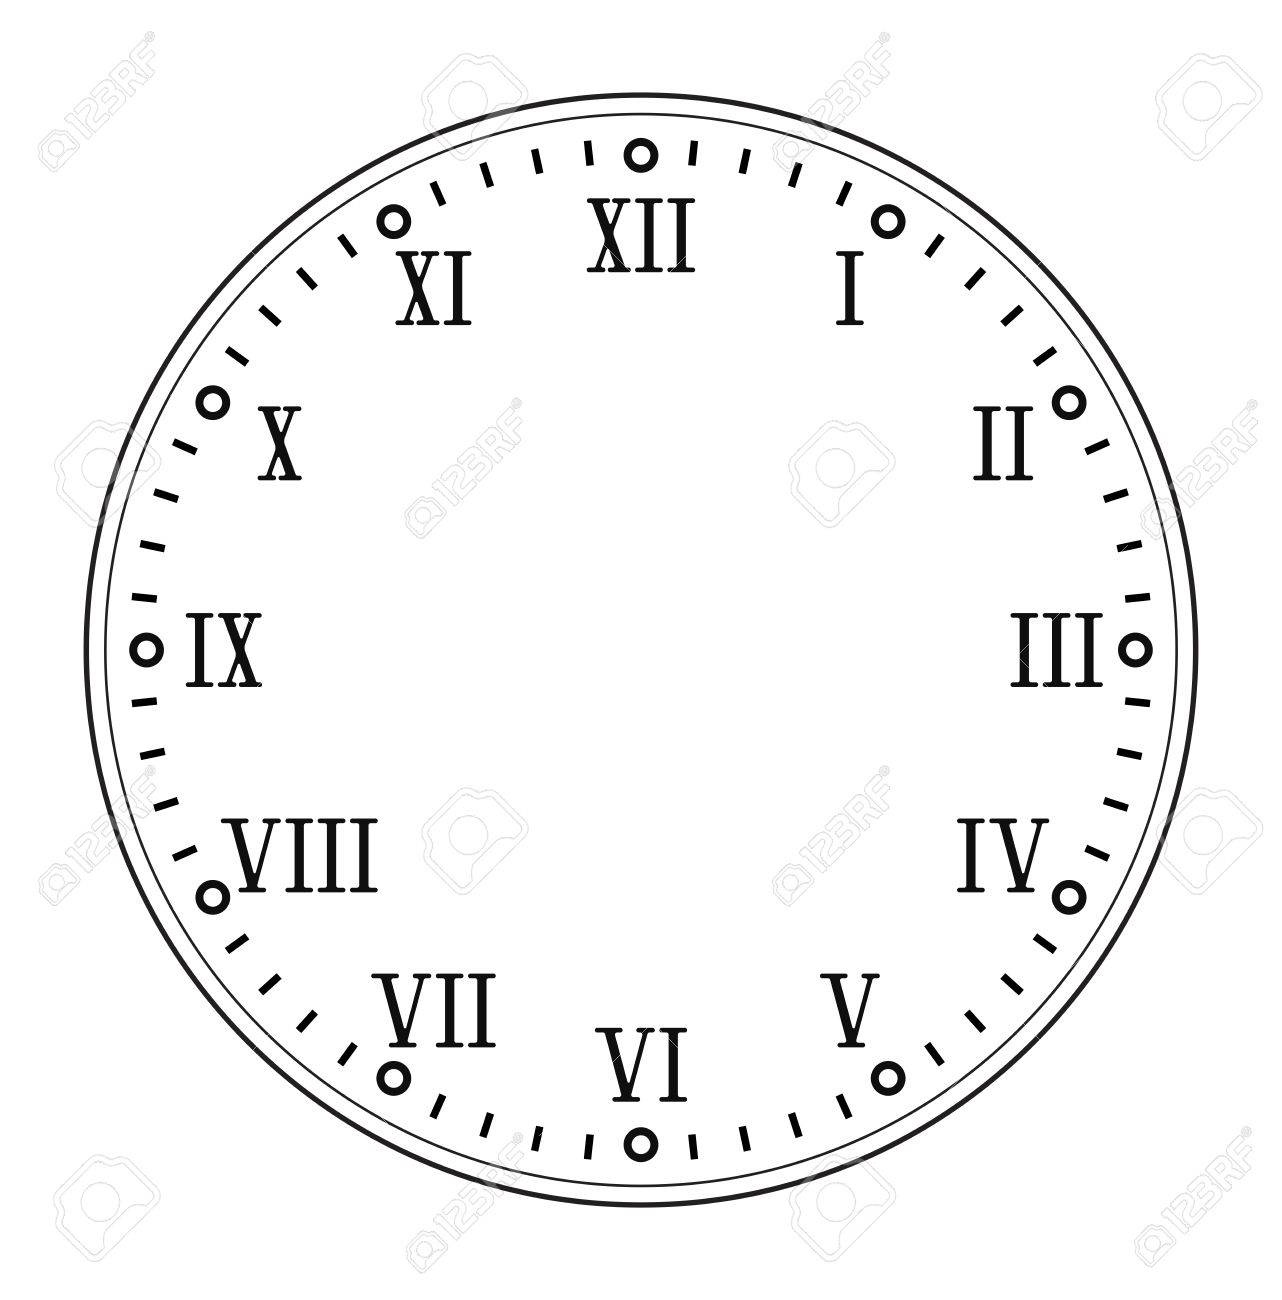 1282x1300 Clock Face With Roman Numerals Royalty Free Cliparts, Vectors,